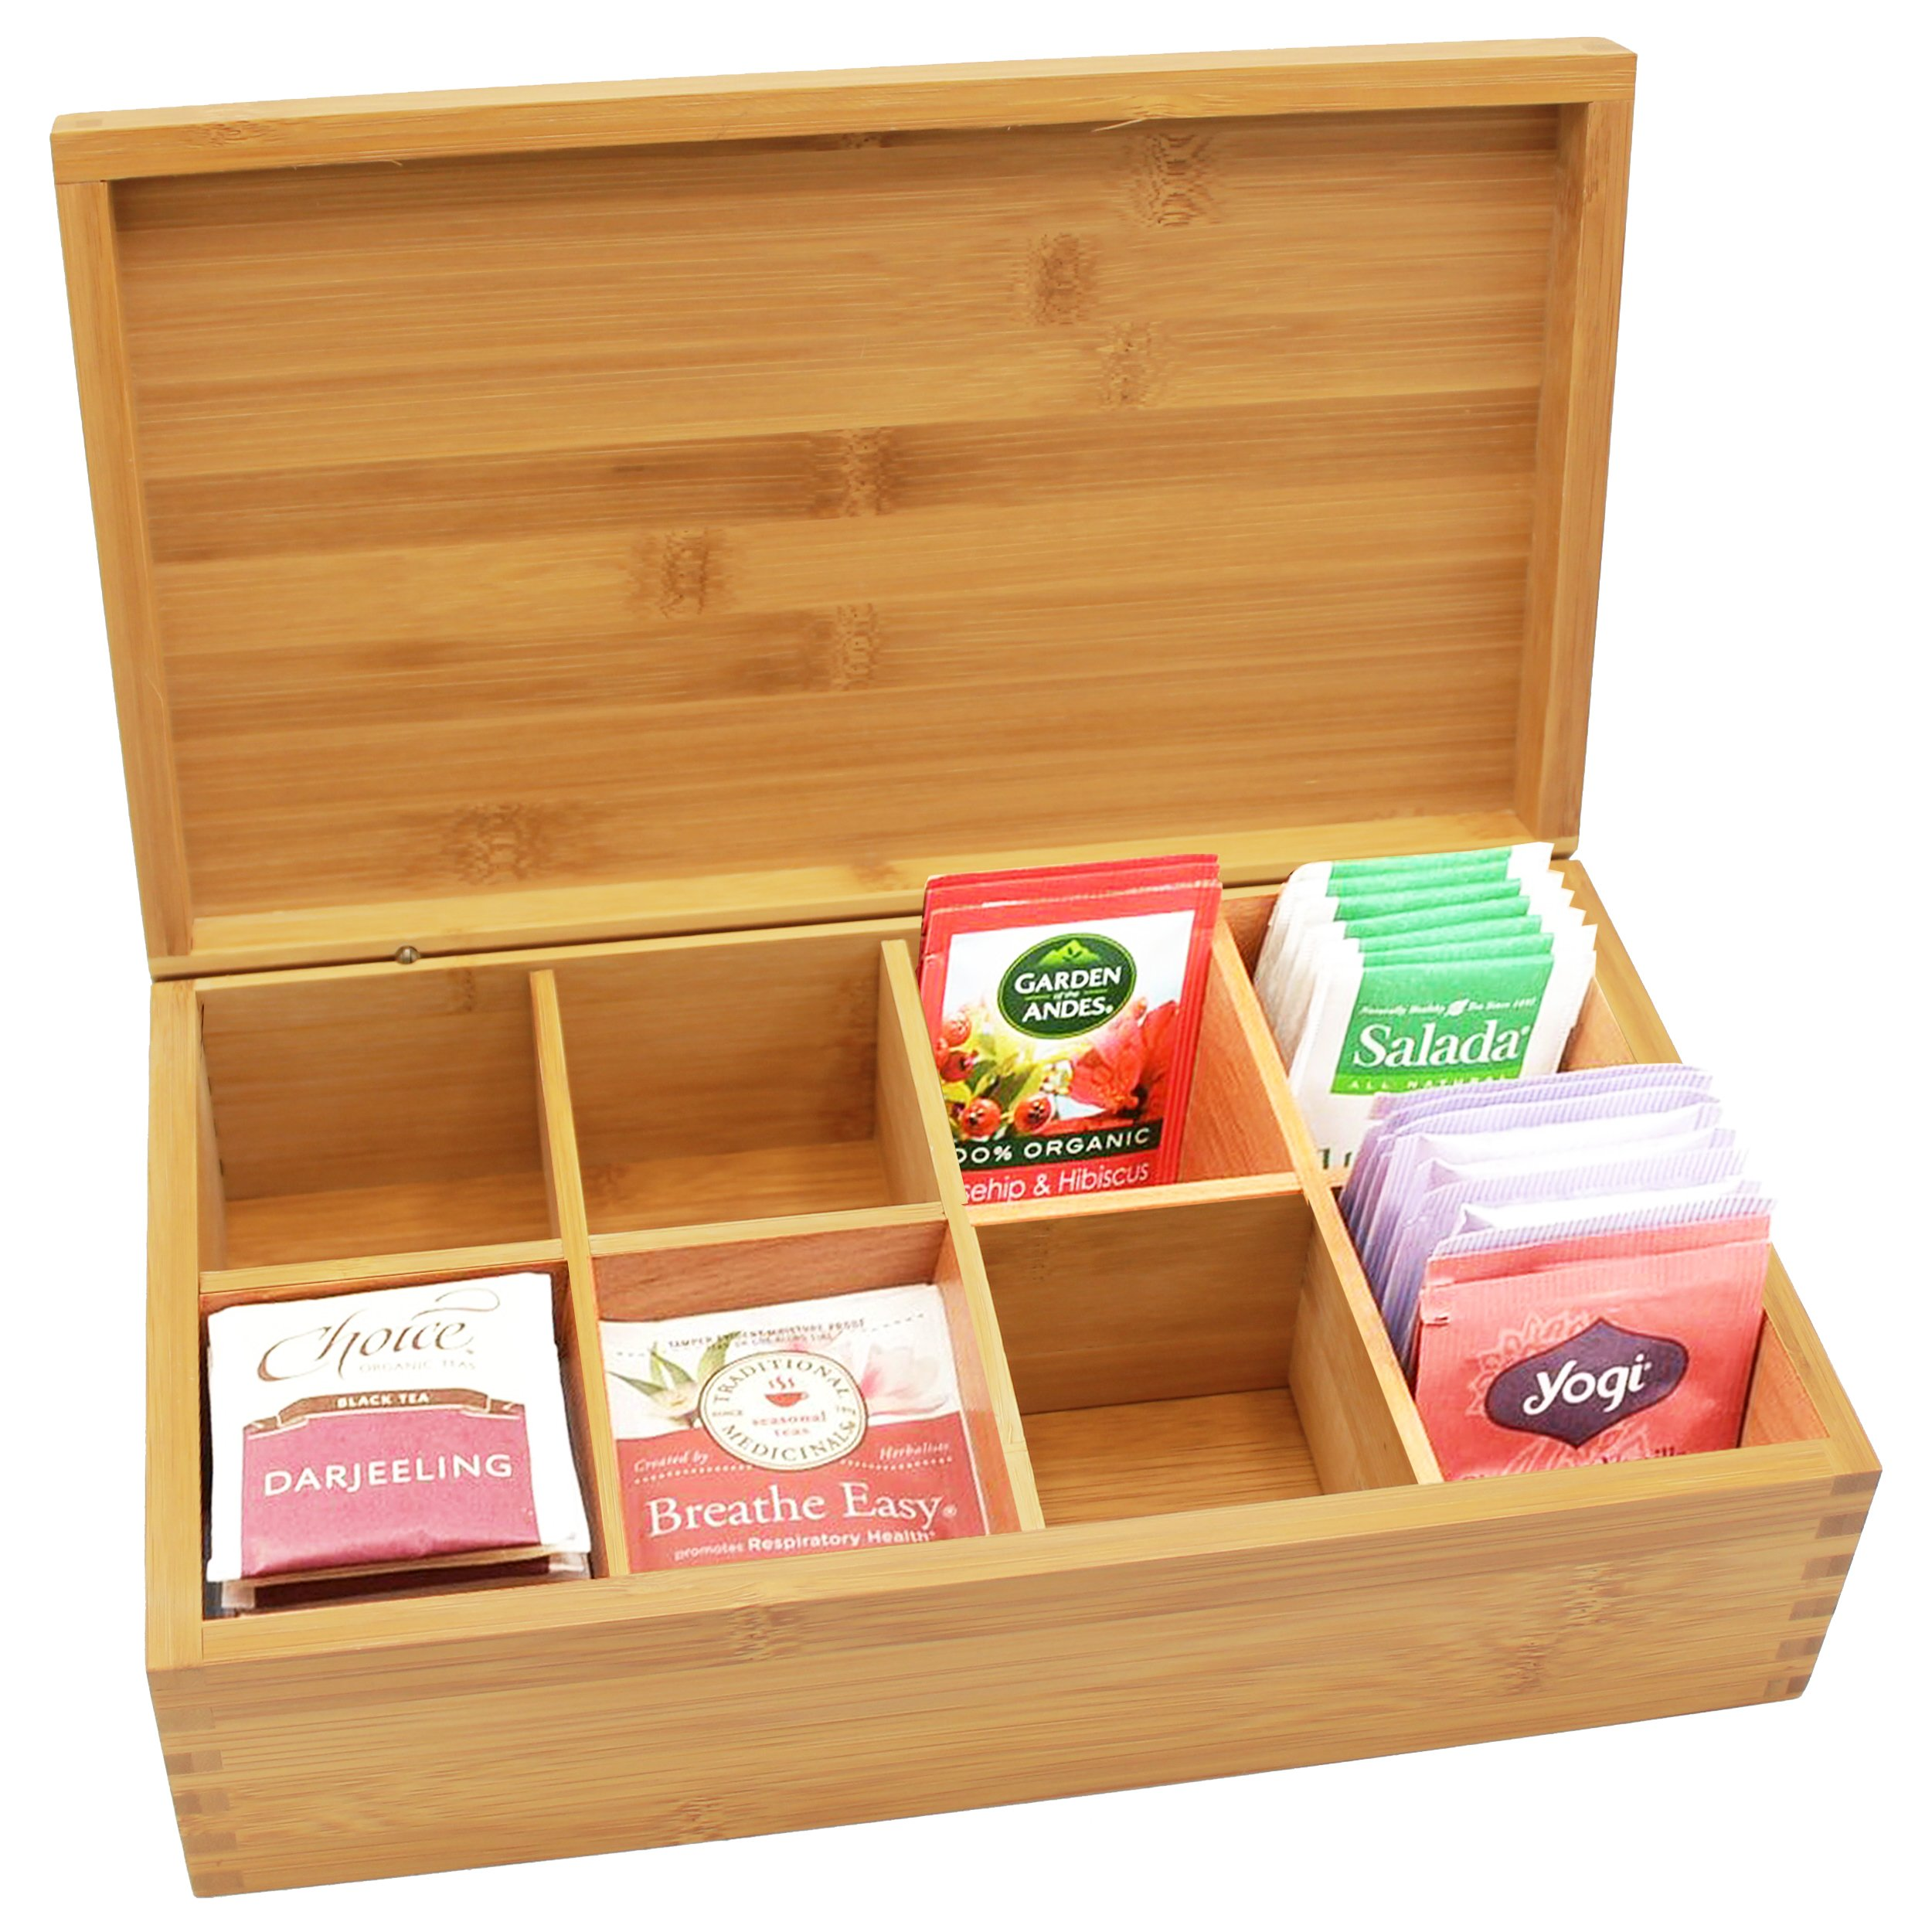 Custom Personalized Wood Tea Box Caddy Organizer - Engraved Bamboo Tea Storage Holder - Monogrammed for Free by The Wedding Party Store (Image #3)